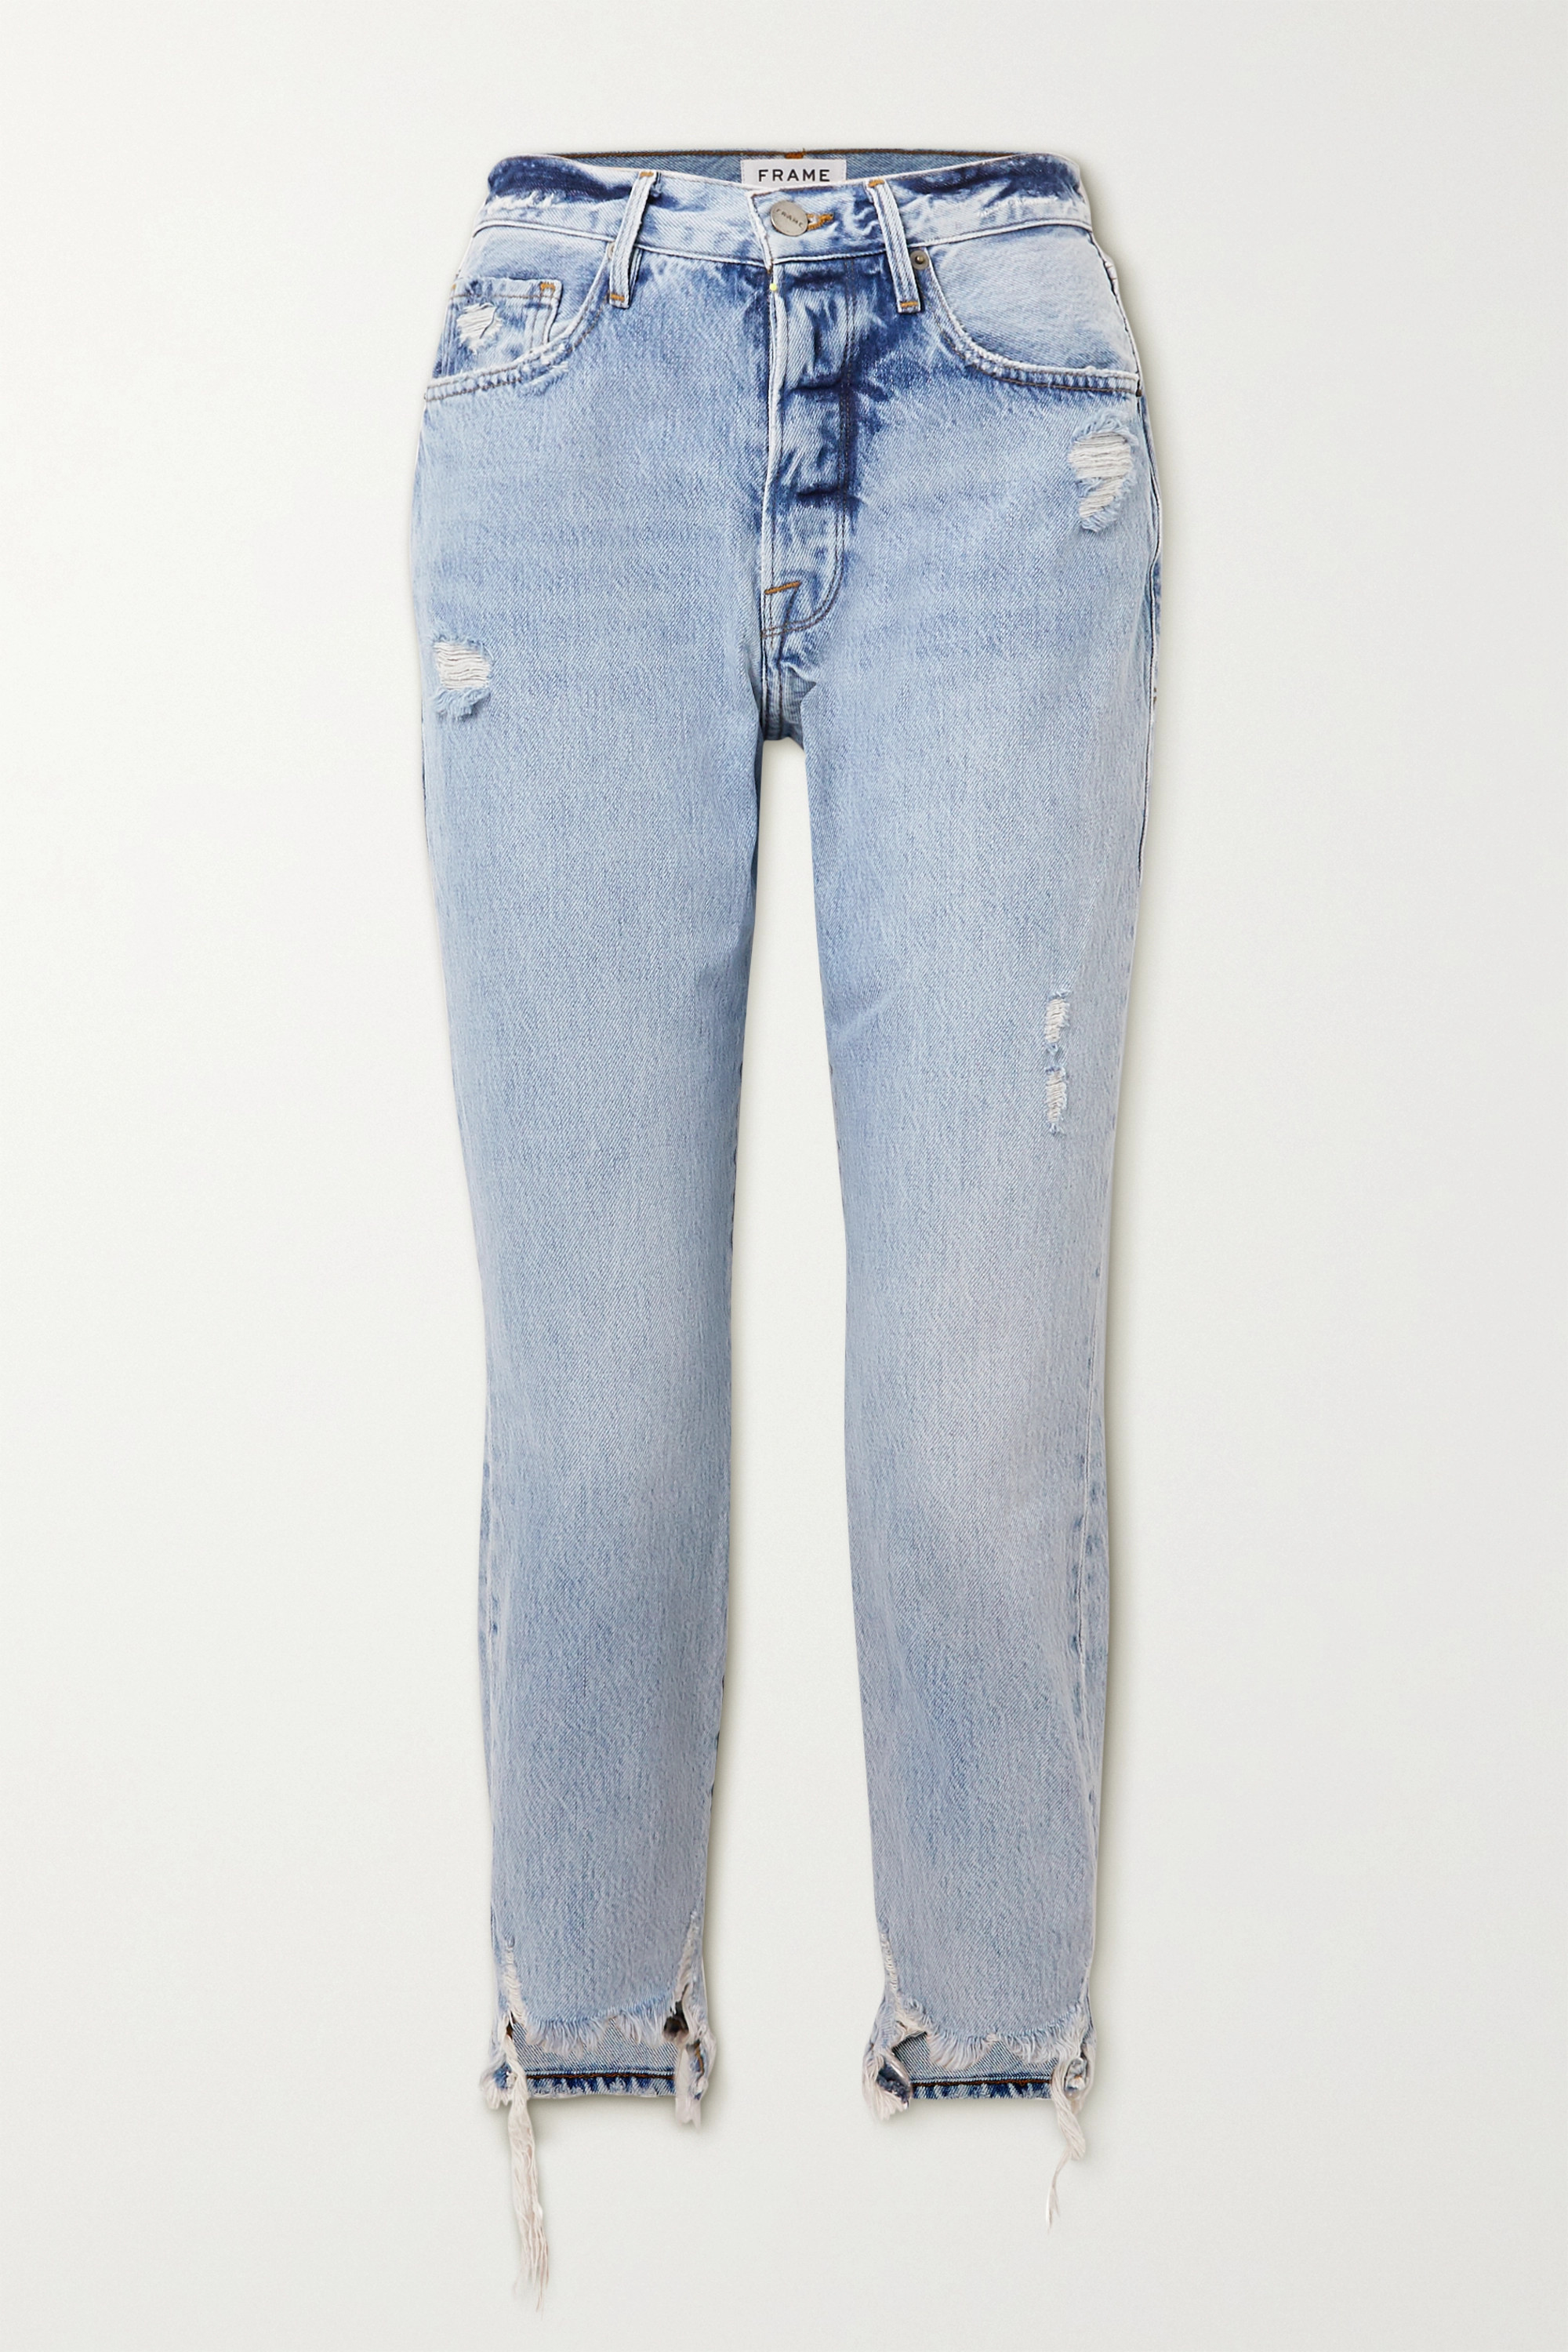 FRAME Le Original distressed high-rise straight-leg jeans